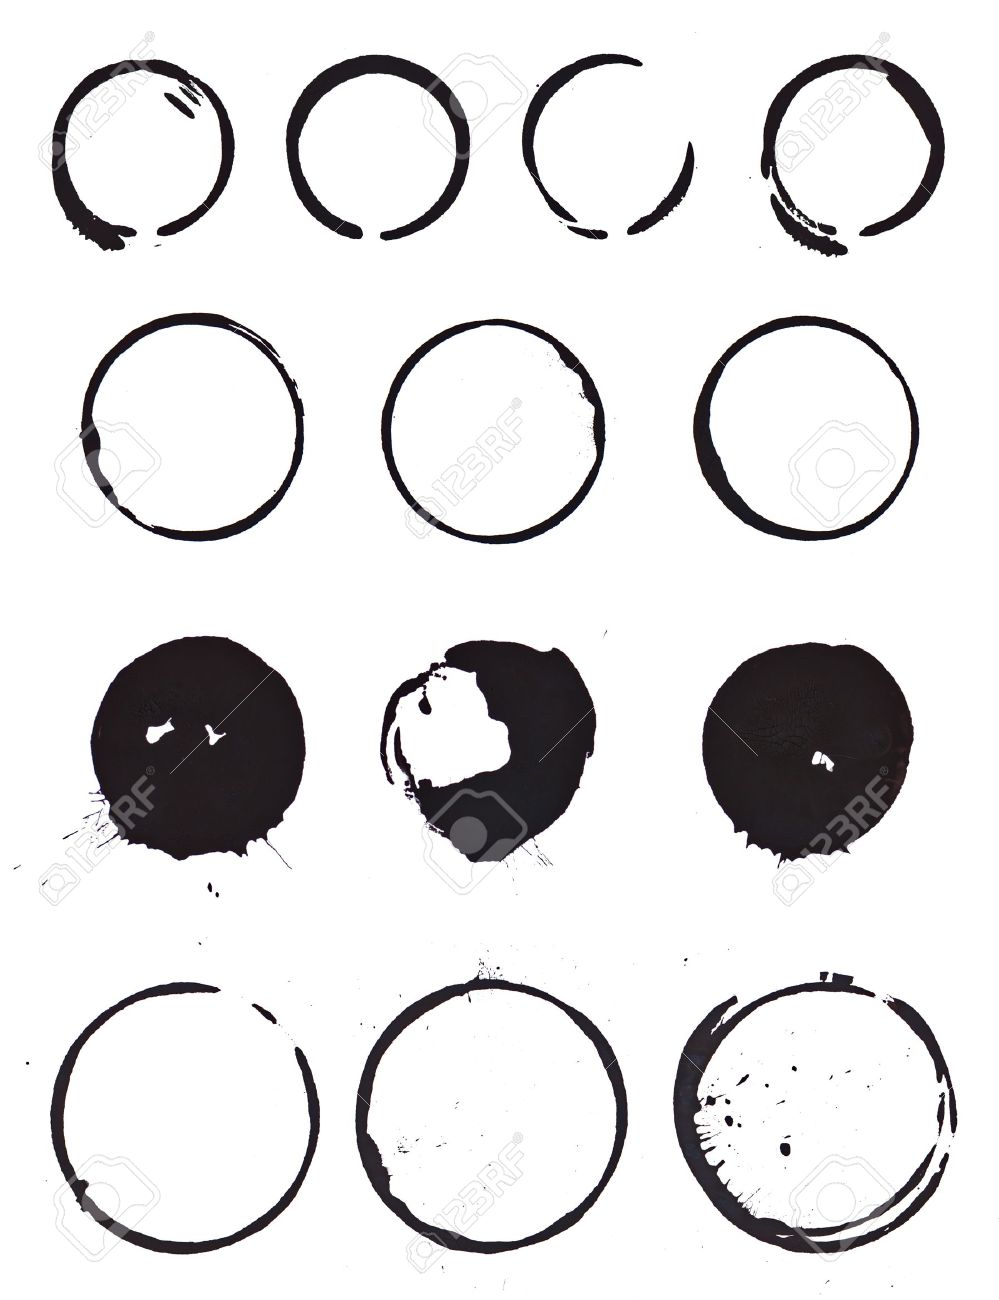 Various Mug Stain Rings From 4 Sets Of Coffee Mugs Done With.. Stock ...